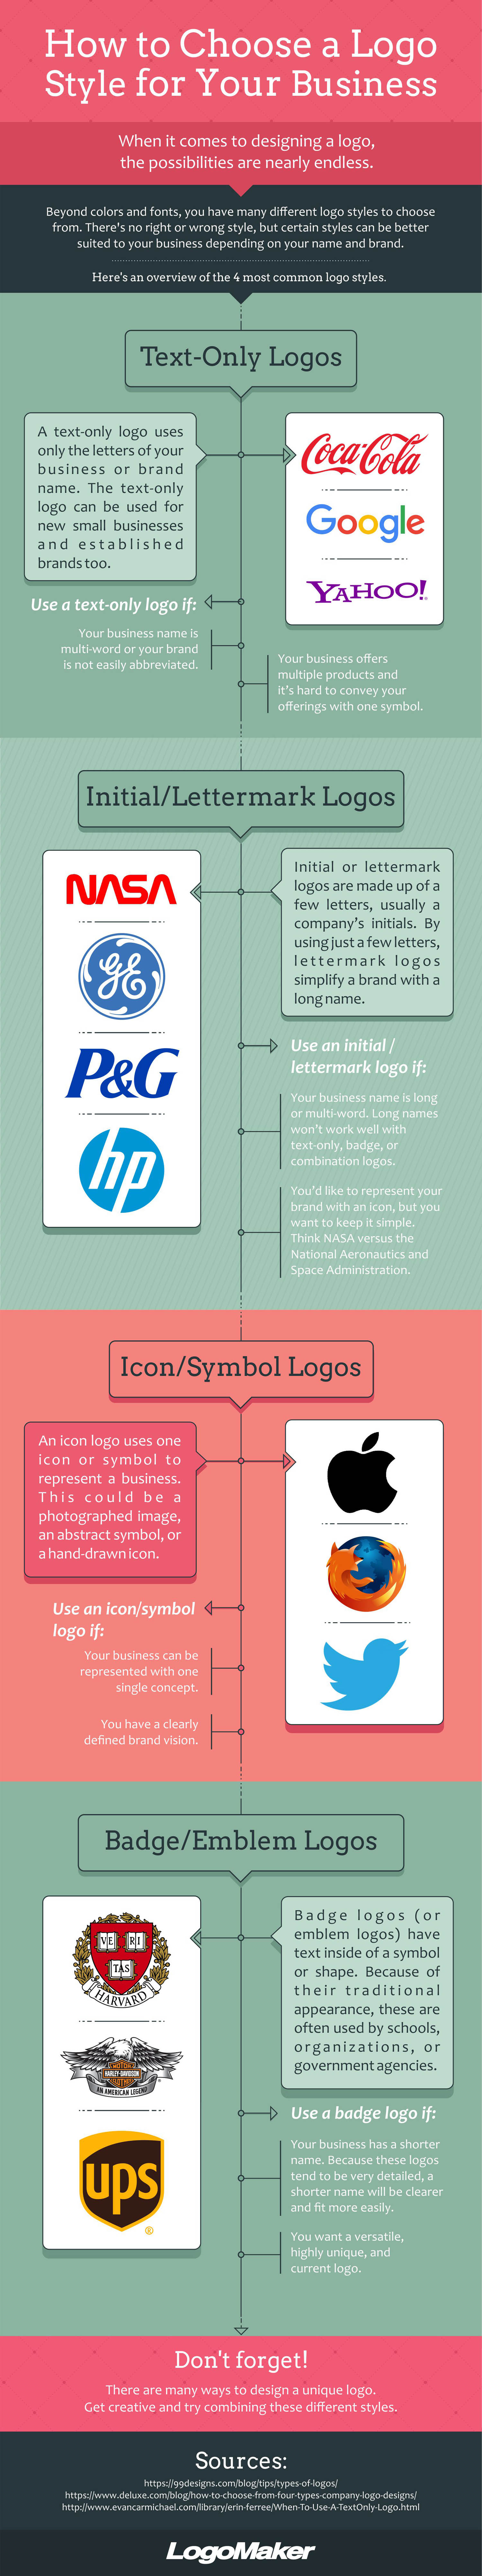 logo-style-for-your-business_logo-maker